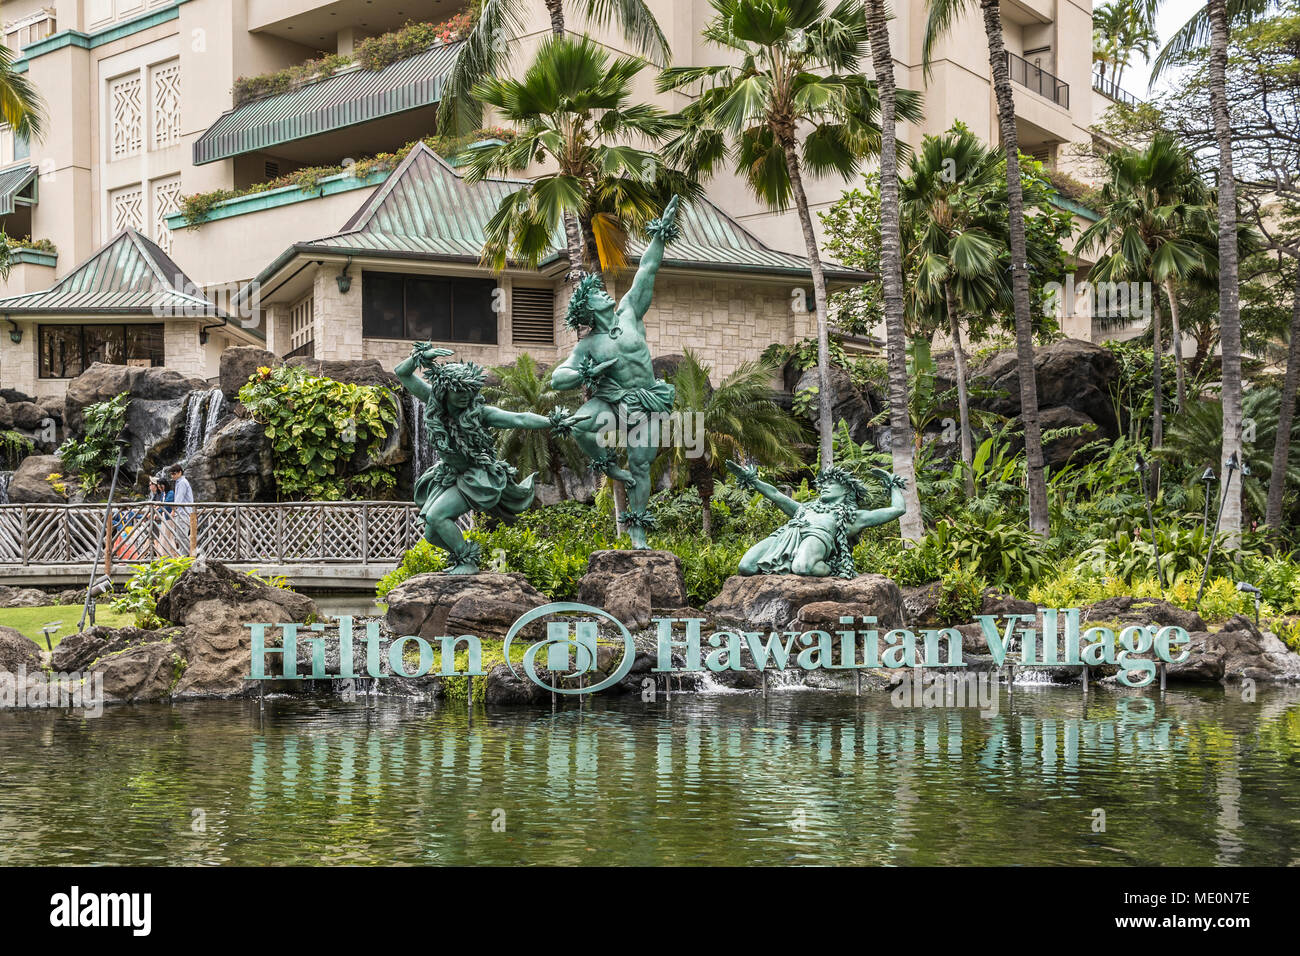 Hula Kahiko dancer statues at Hilton Hawaiian Village, Waikiki; Honolulu, Oahu, Hawaii, United States of America - Stock Image